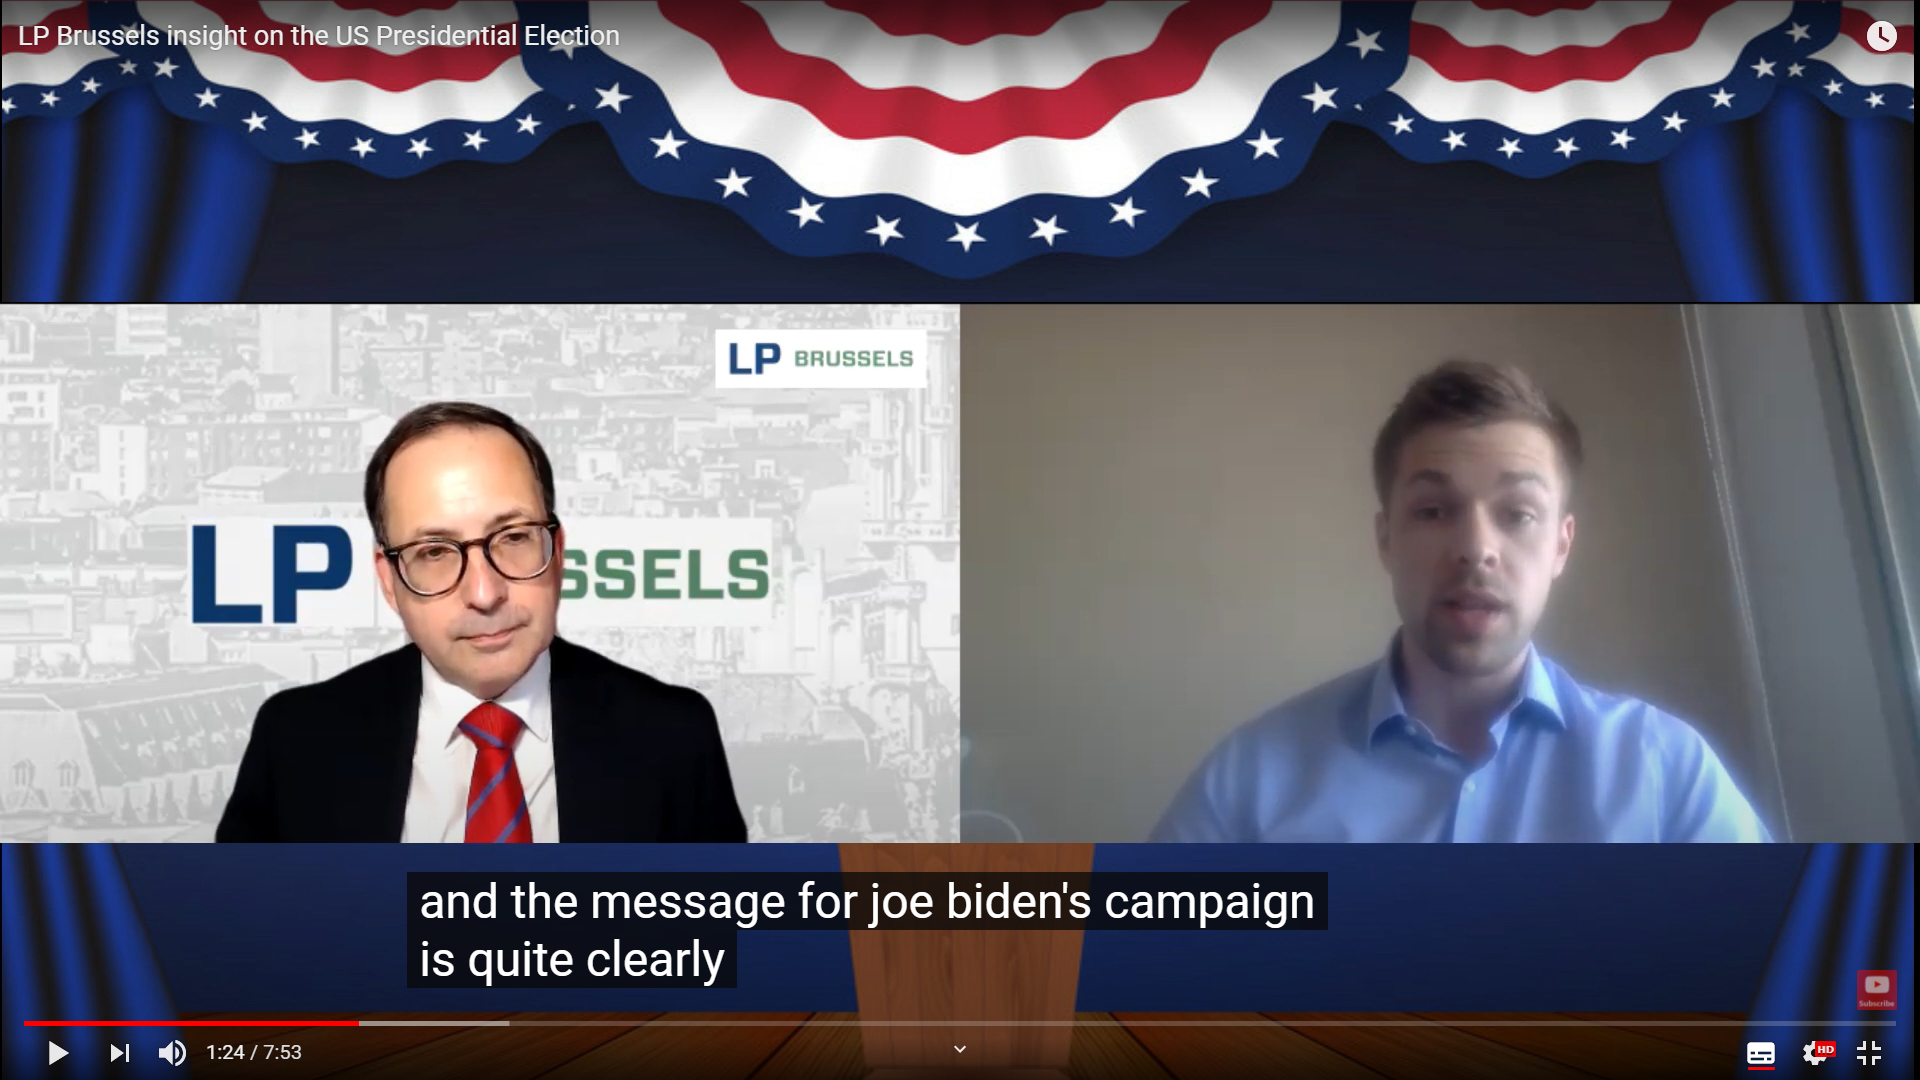 The PRESIDENTIAL ELECTION SHOW - follow our weekly analysis with special guests